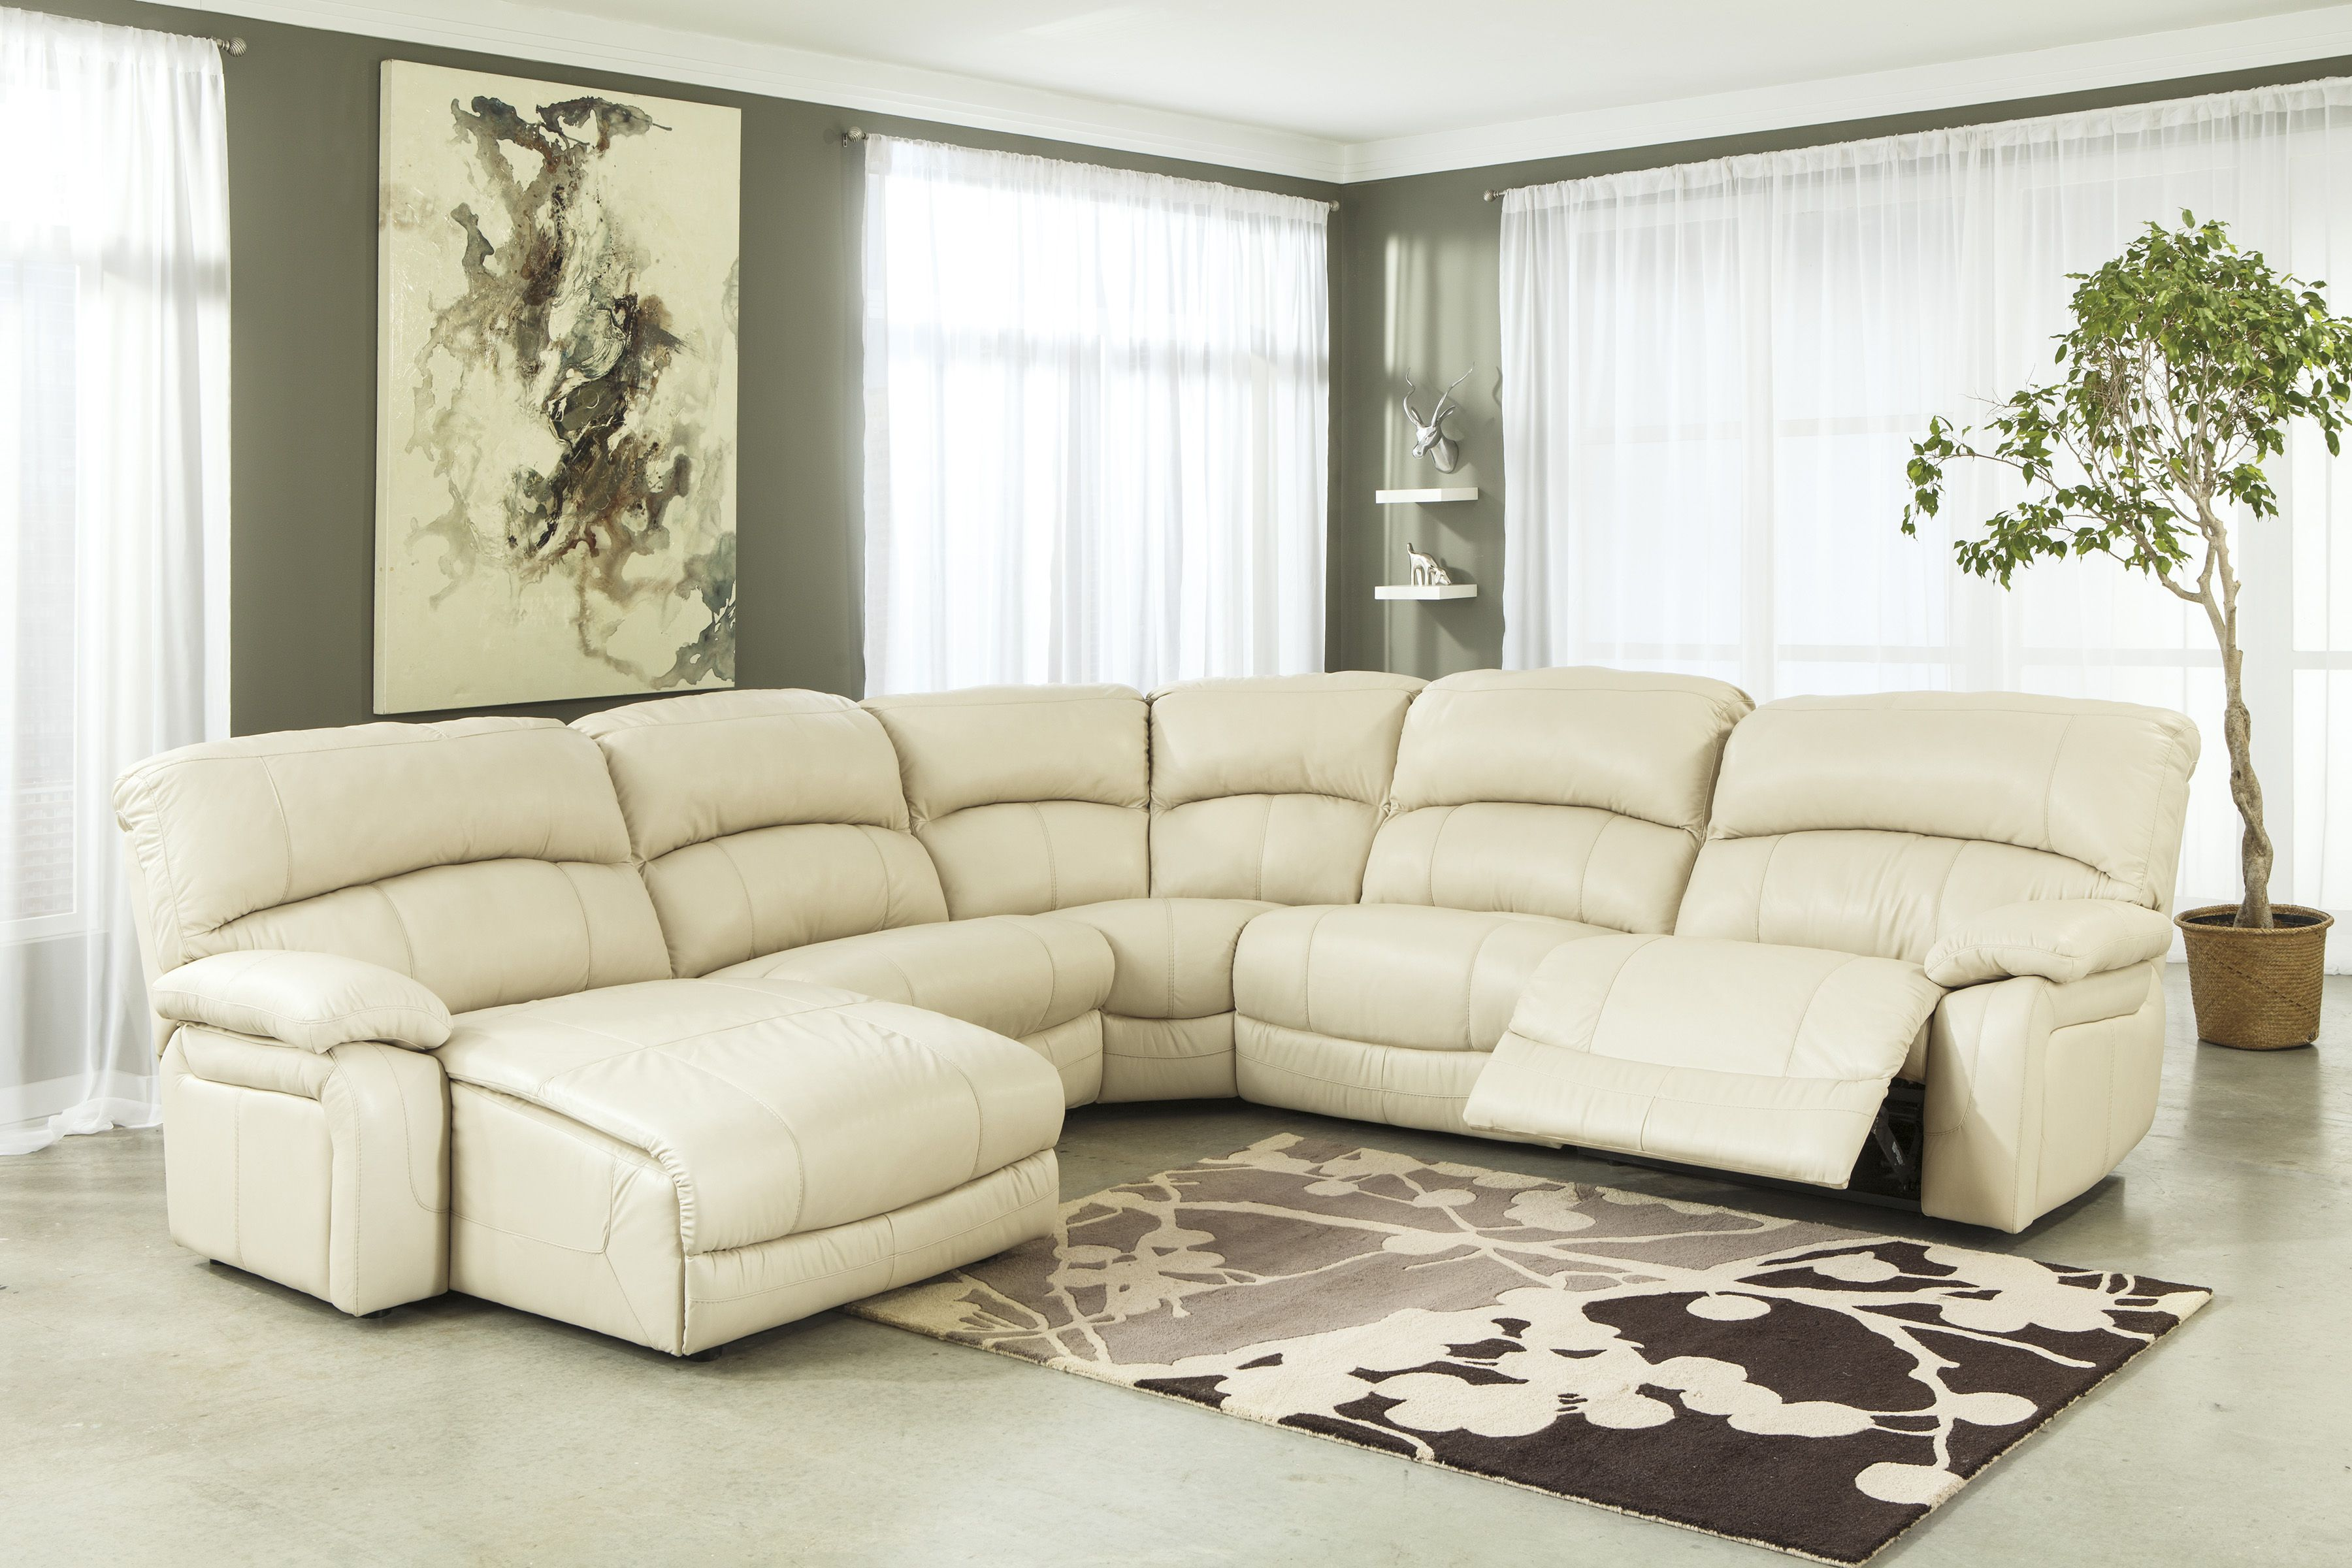 Off White Leather Reclining Sofa Best Collections Of Sofas And Couches Sofacouchs Com White Leather Couch Cream Leather Sofa Leather Reclining Sectional Sofa